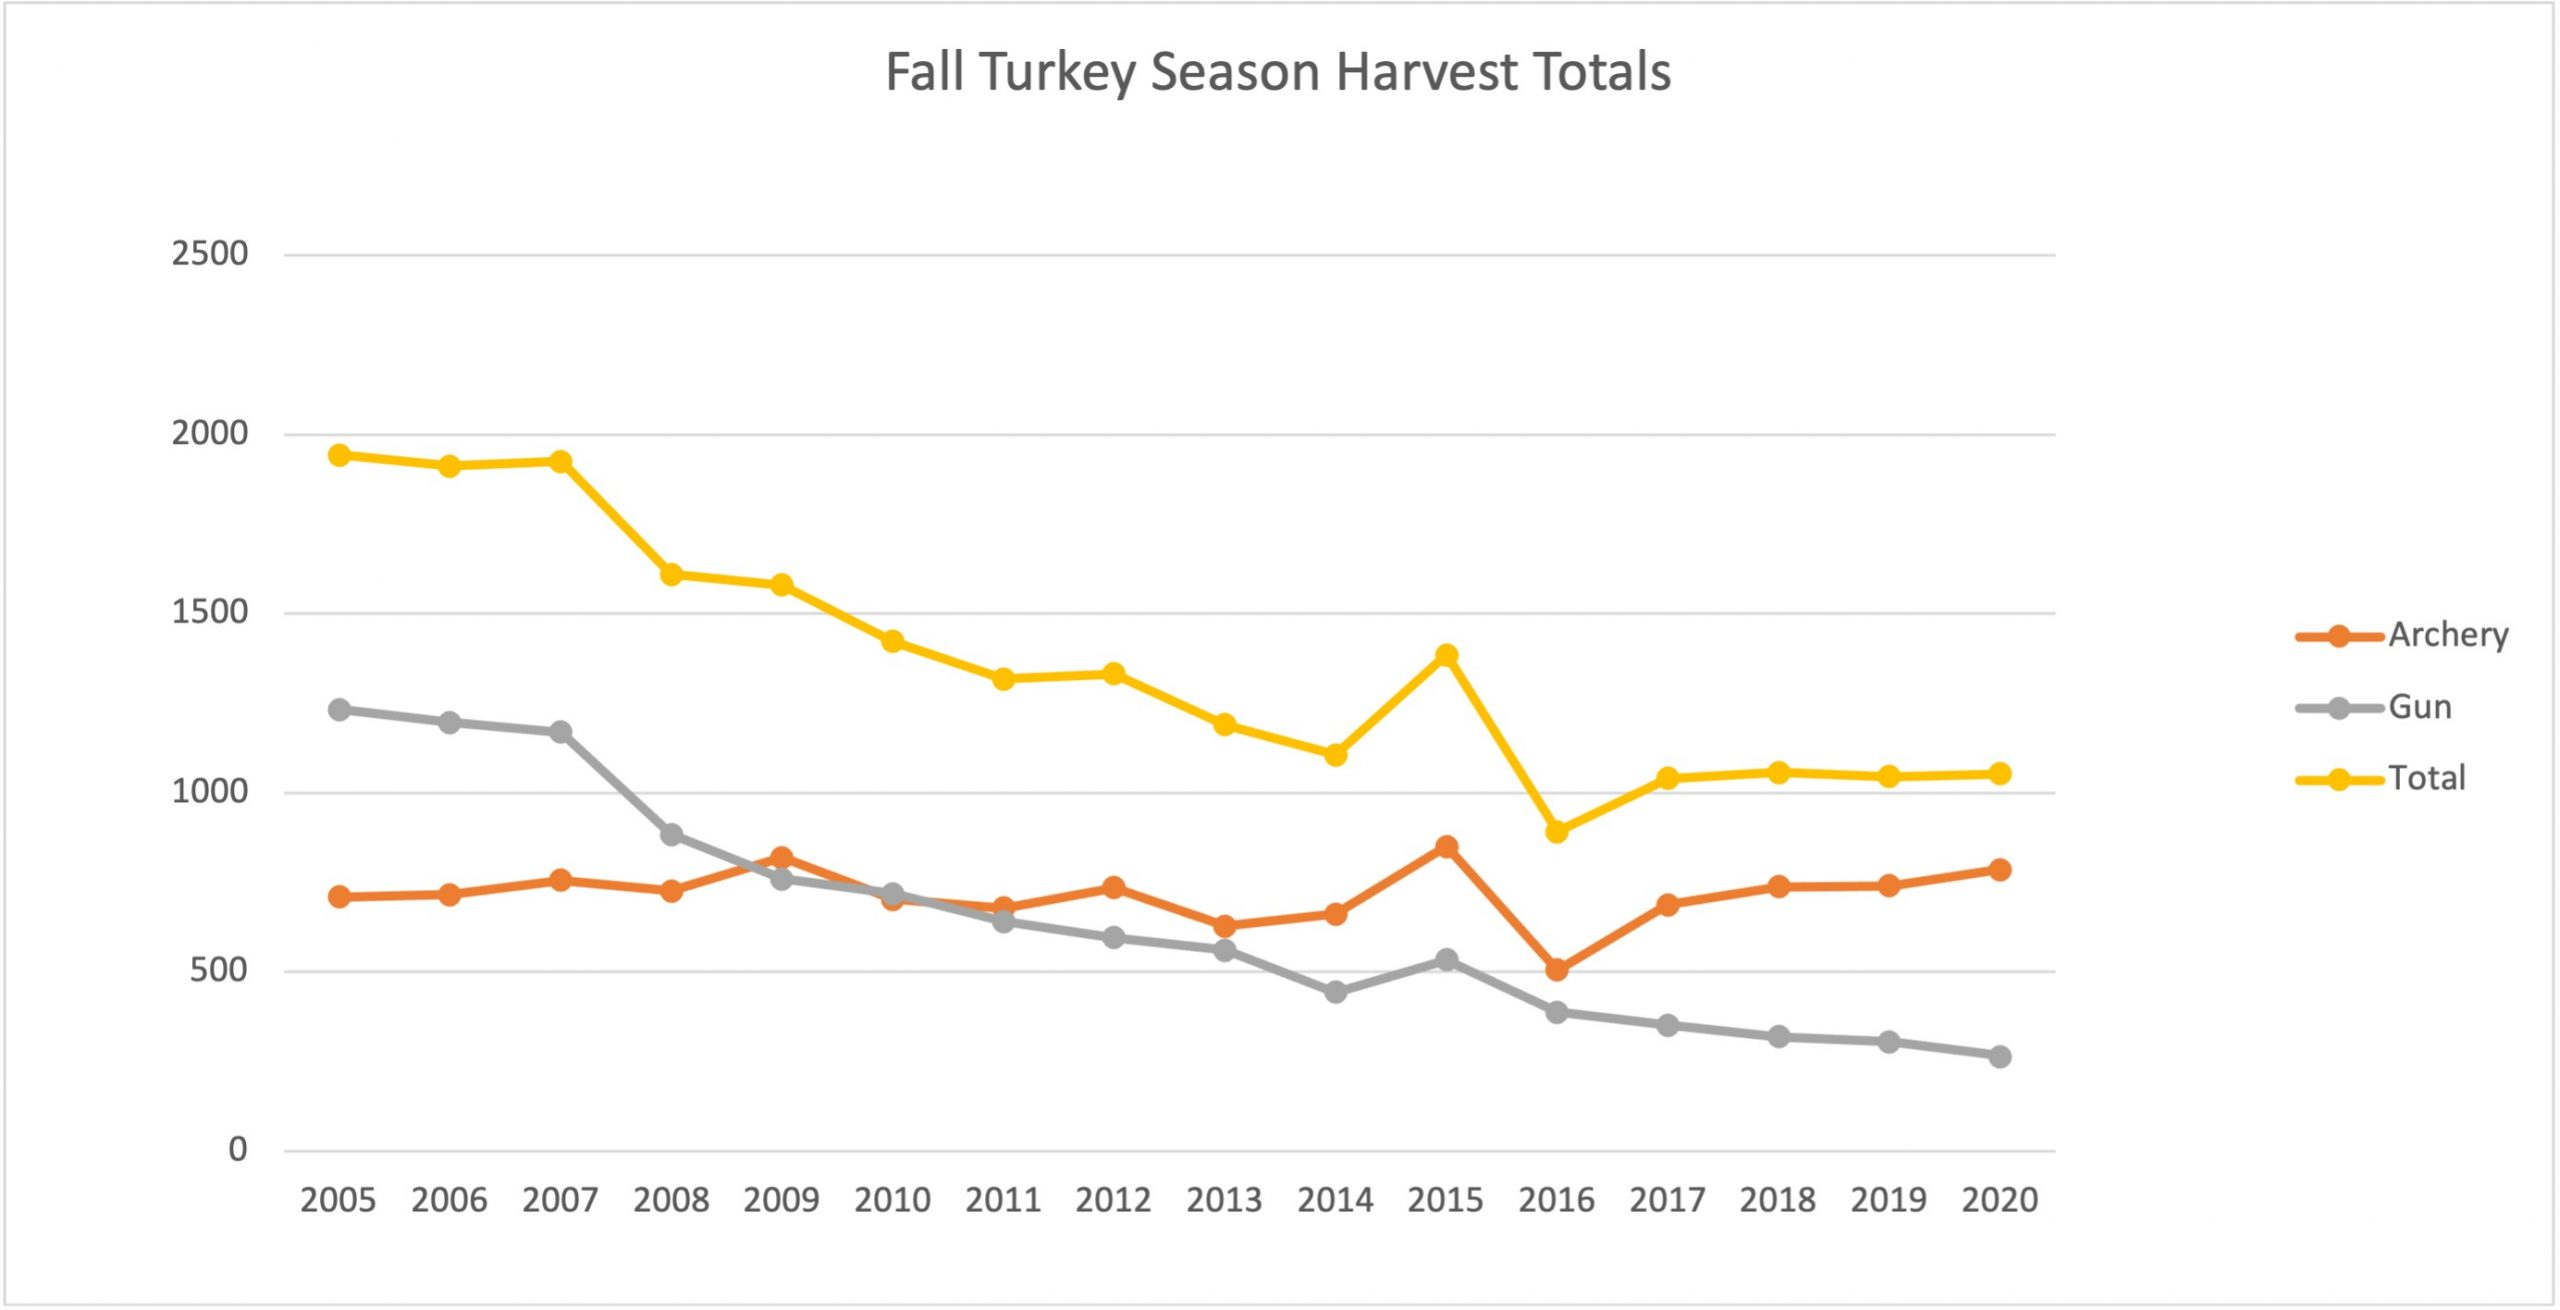 A chart indicating fall turkey season harvest totals over the past 15 years.